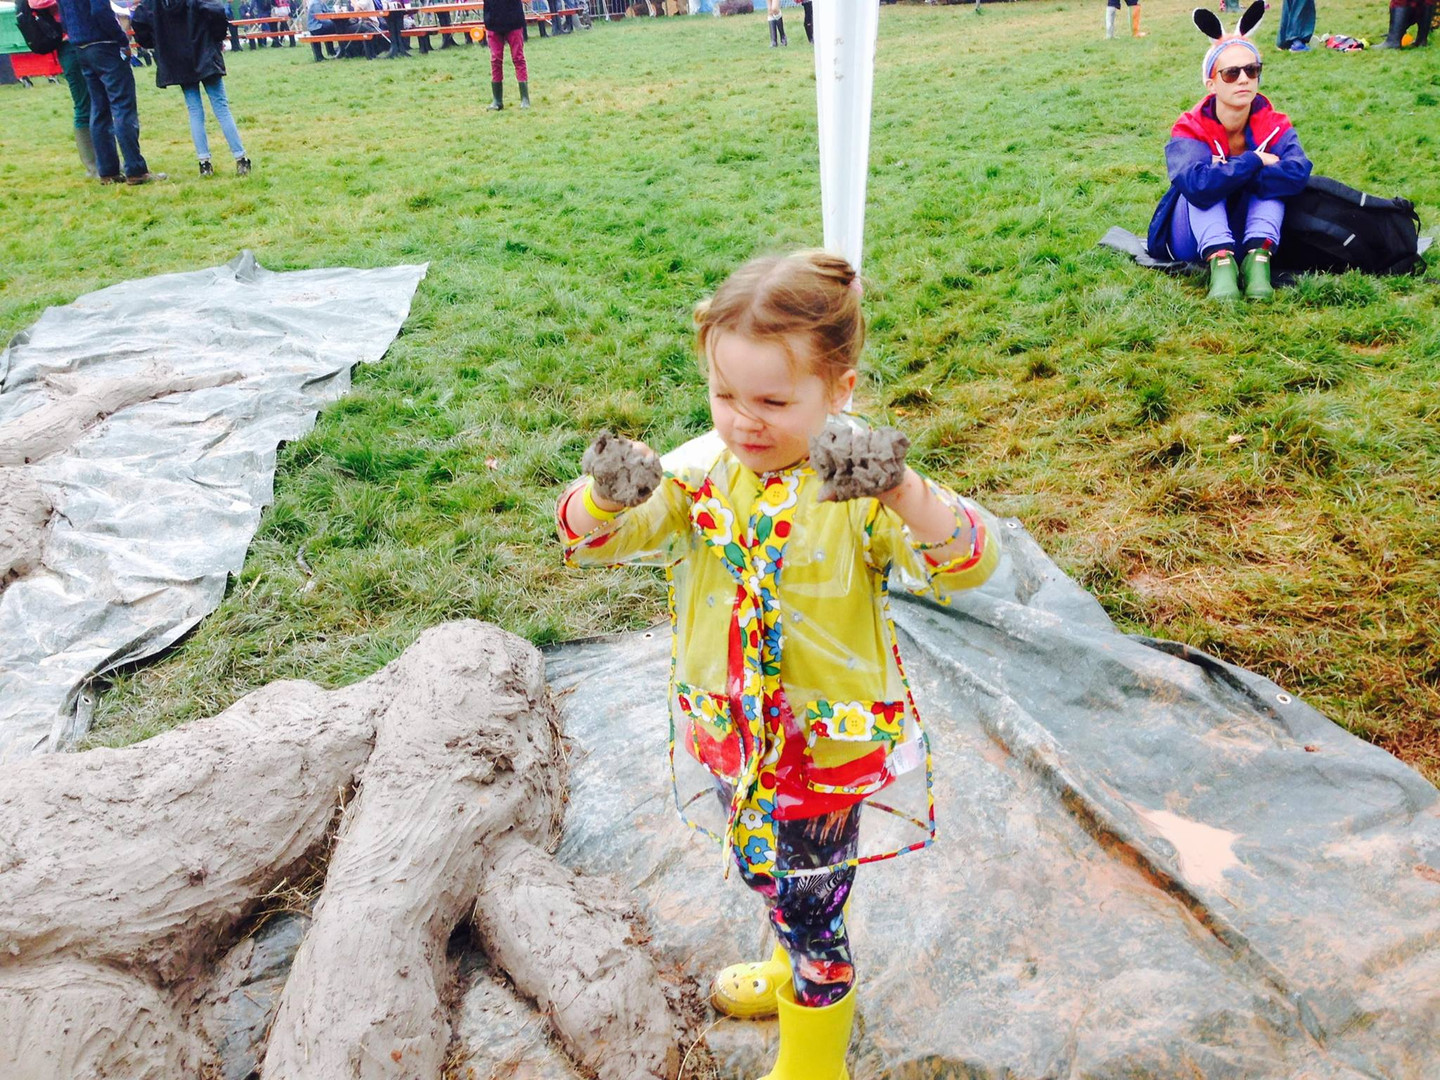 Cob Stomping at the Greenman Festival